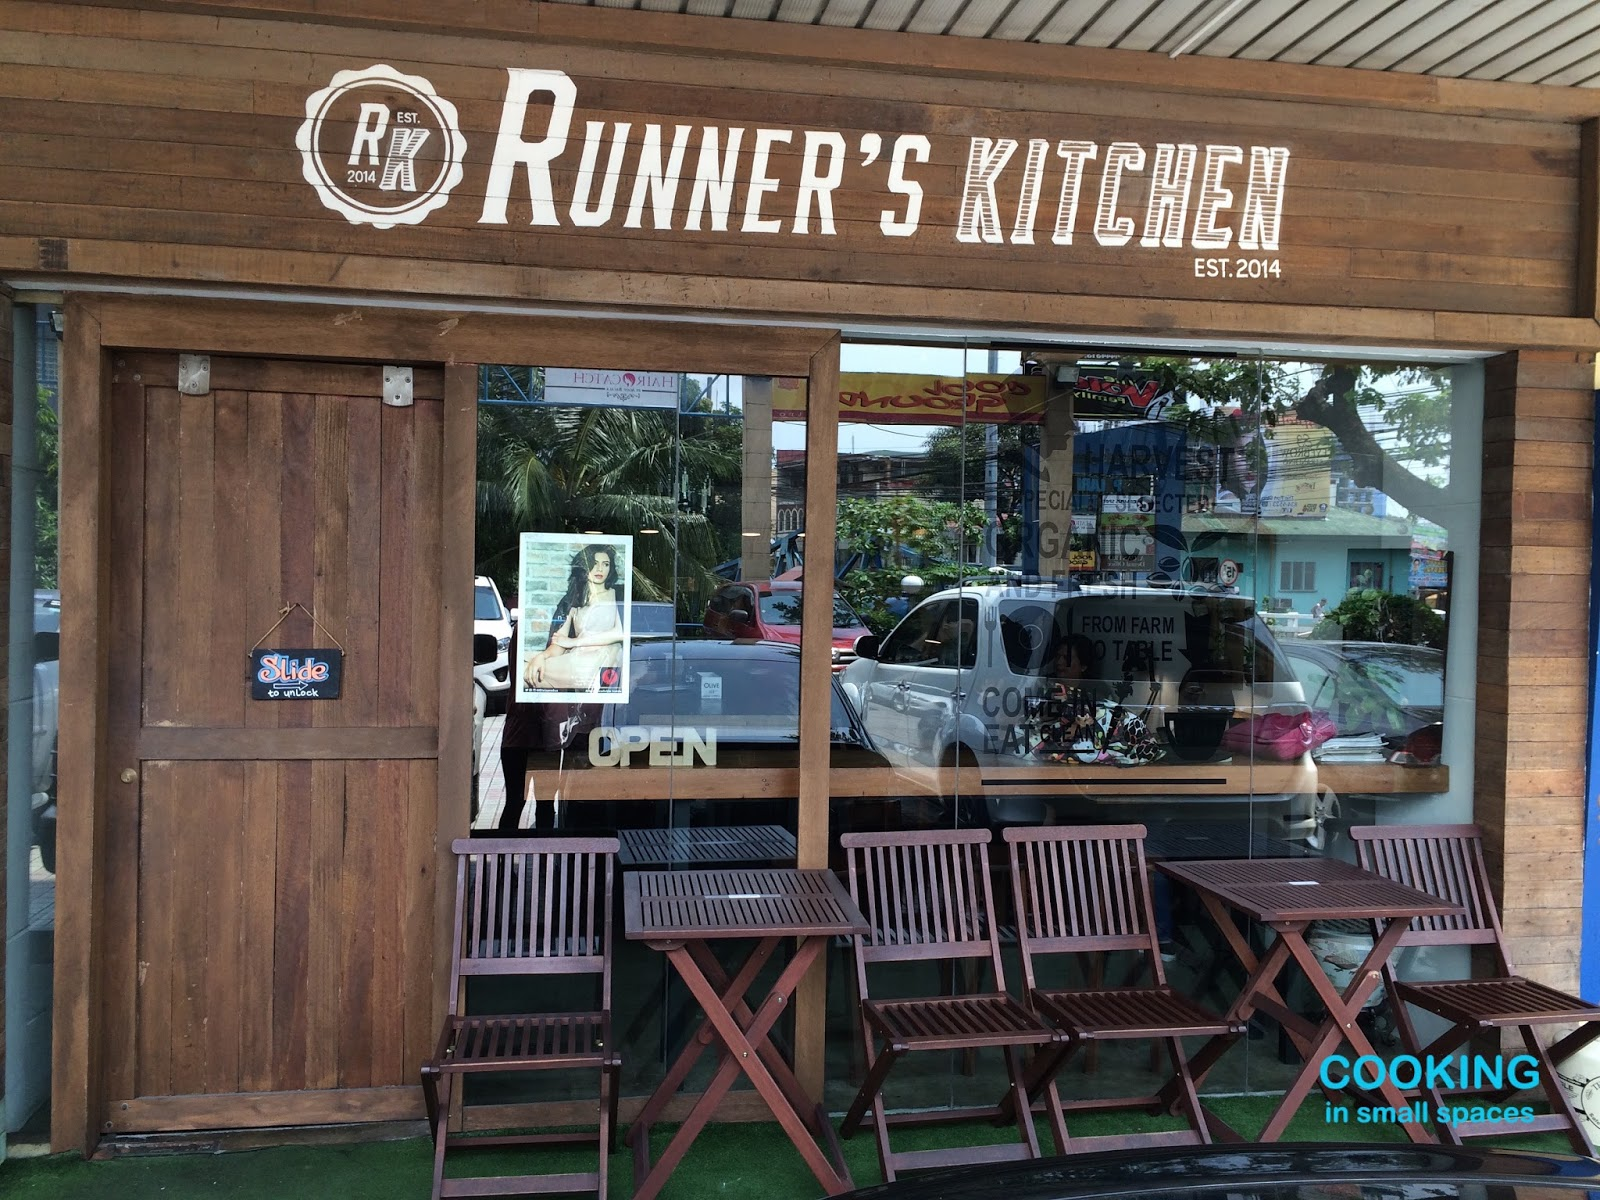 runners kitchen bakers racks for cooking in small spaces found runner s the earthiness of wooden fascia extends to its interiors which feels like a well appointed baguio b central table awaits big group or